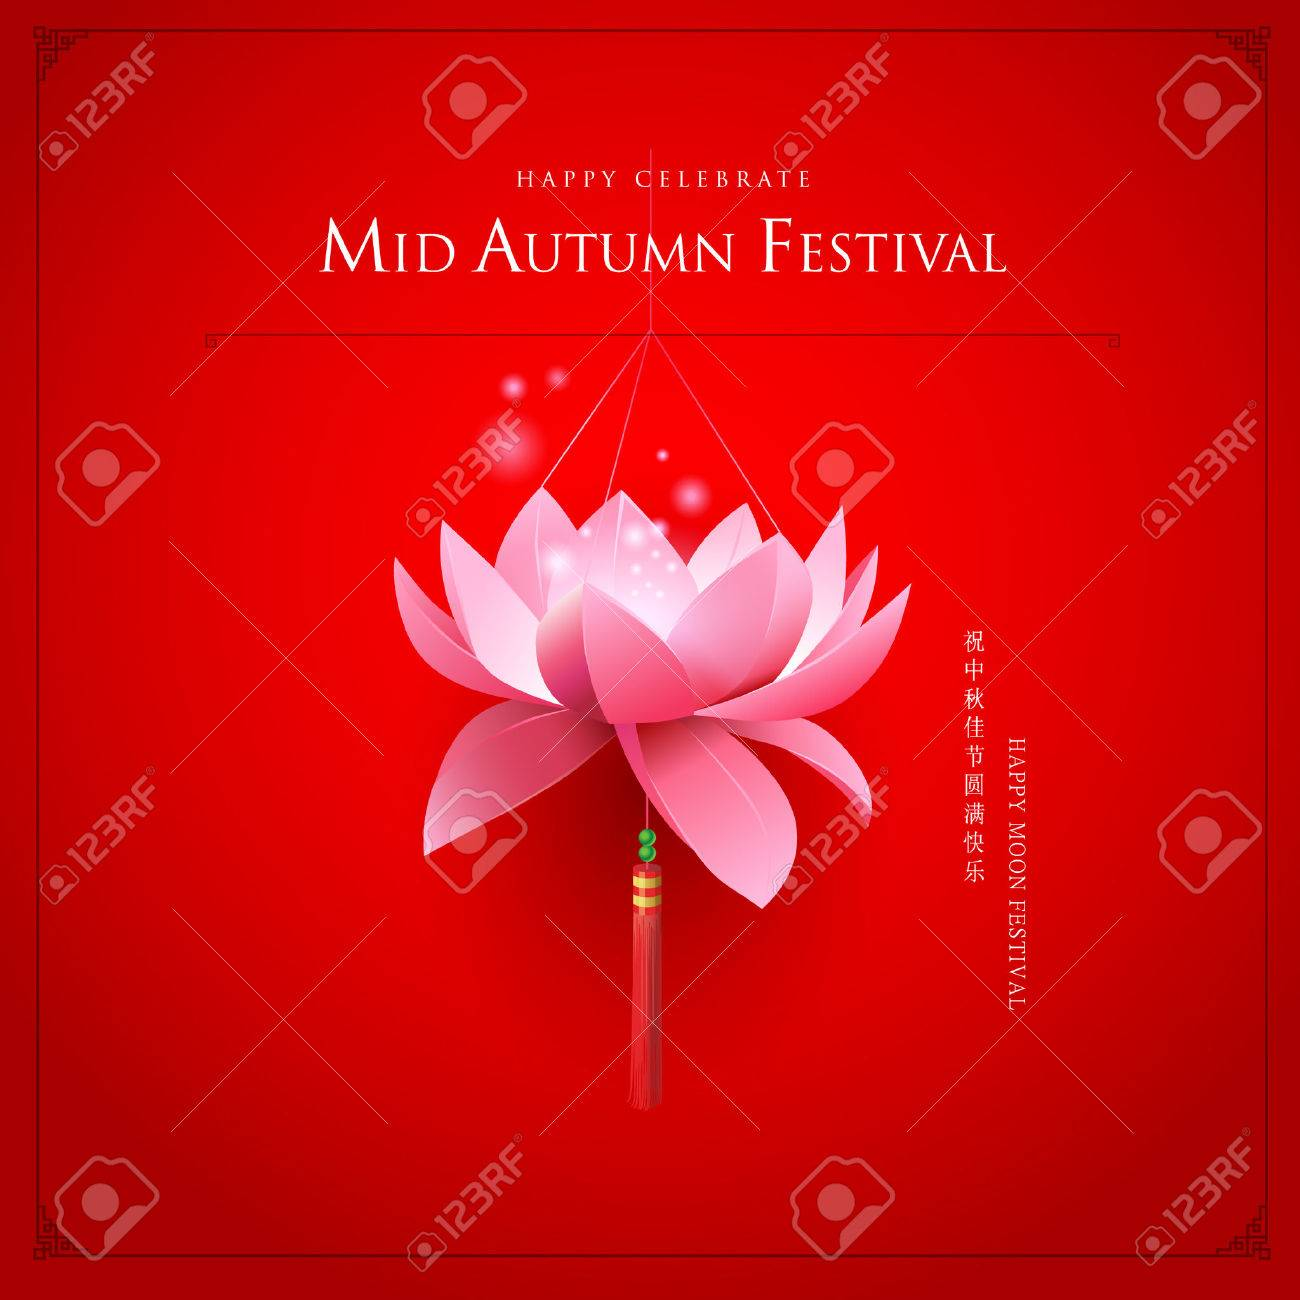 Chinese mid autumn festival background royalty free cliparts chinese mid autumn festival background stock vector 44114112 kristyandbryce Choice Image